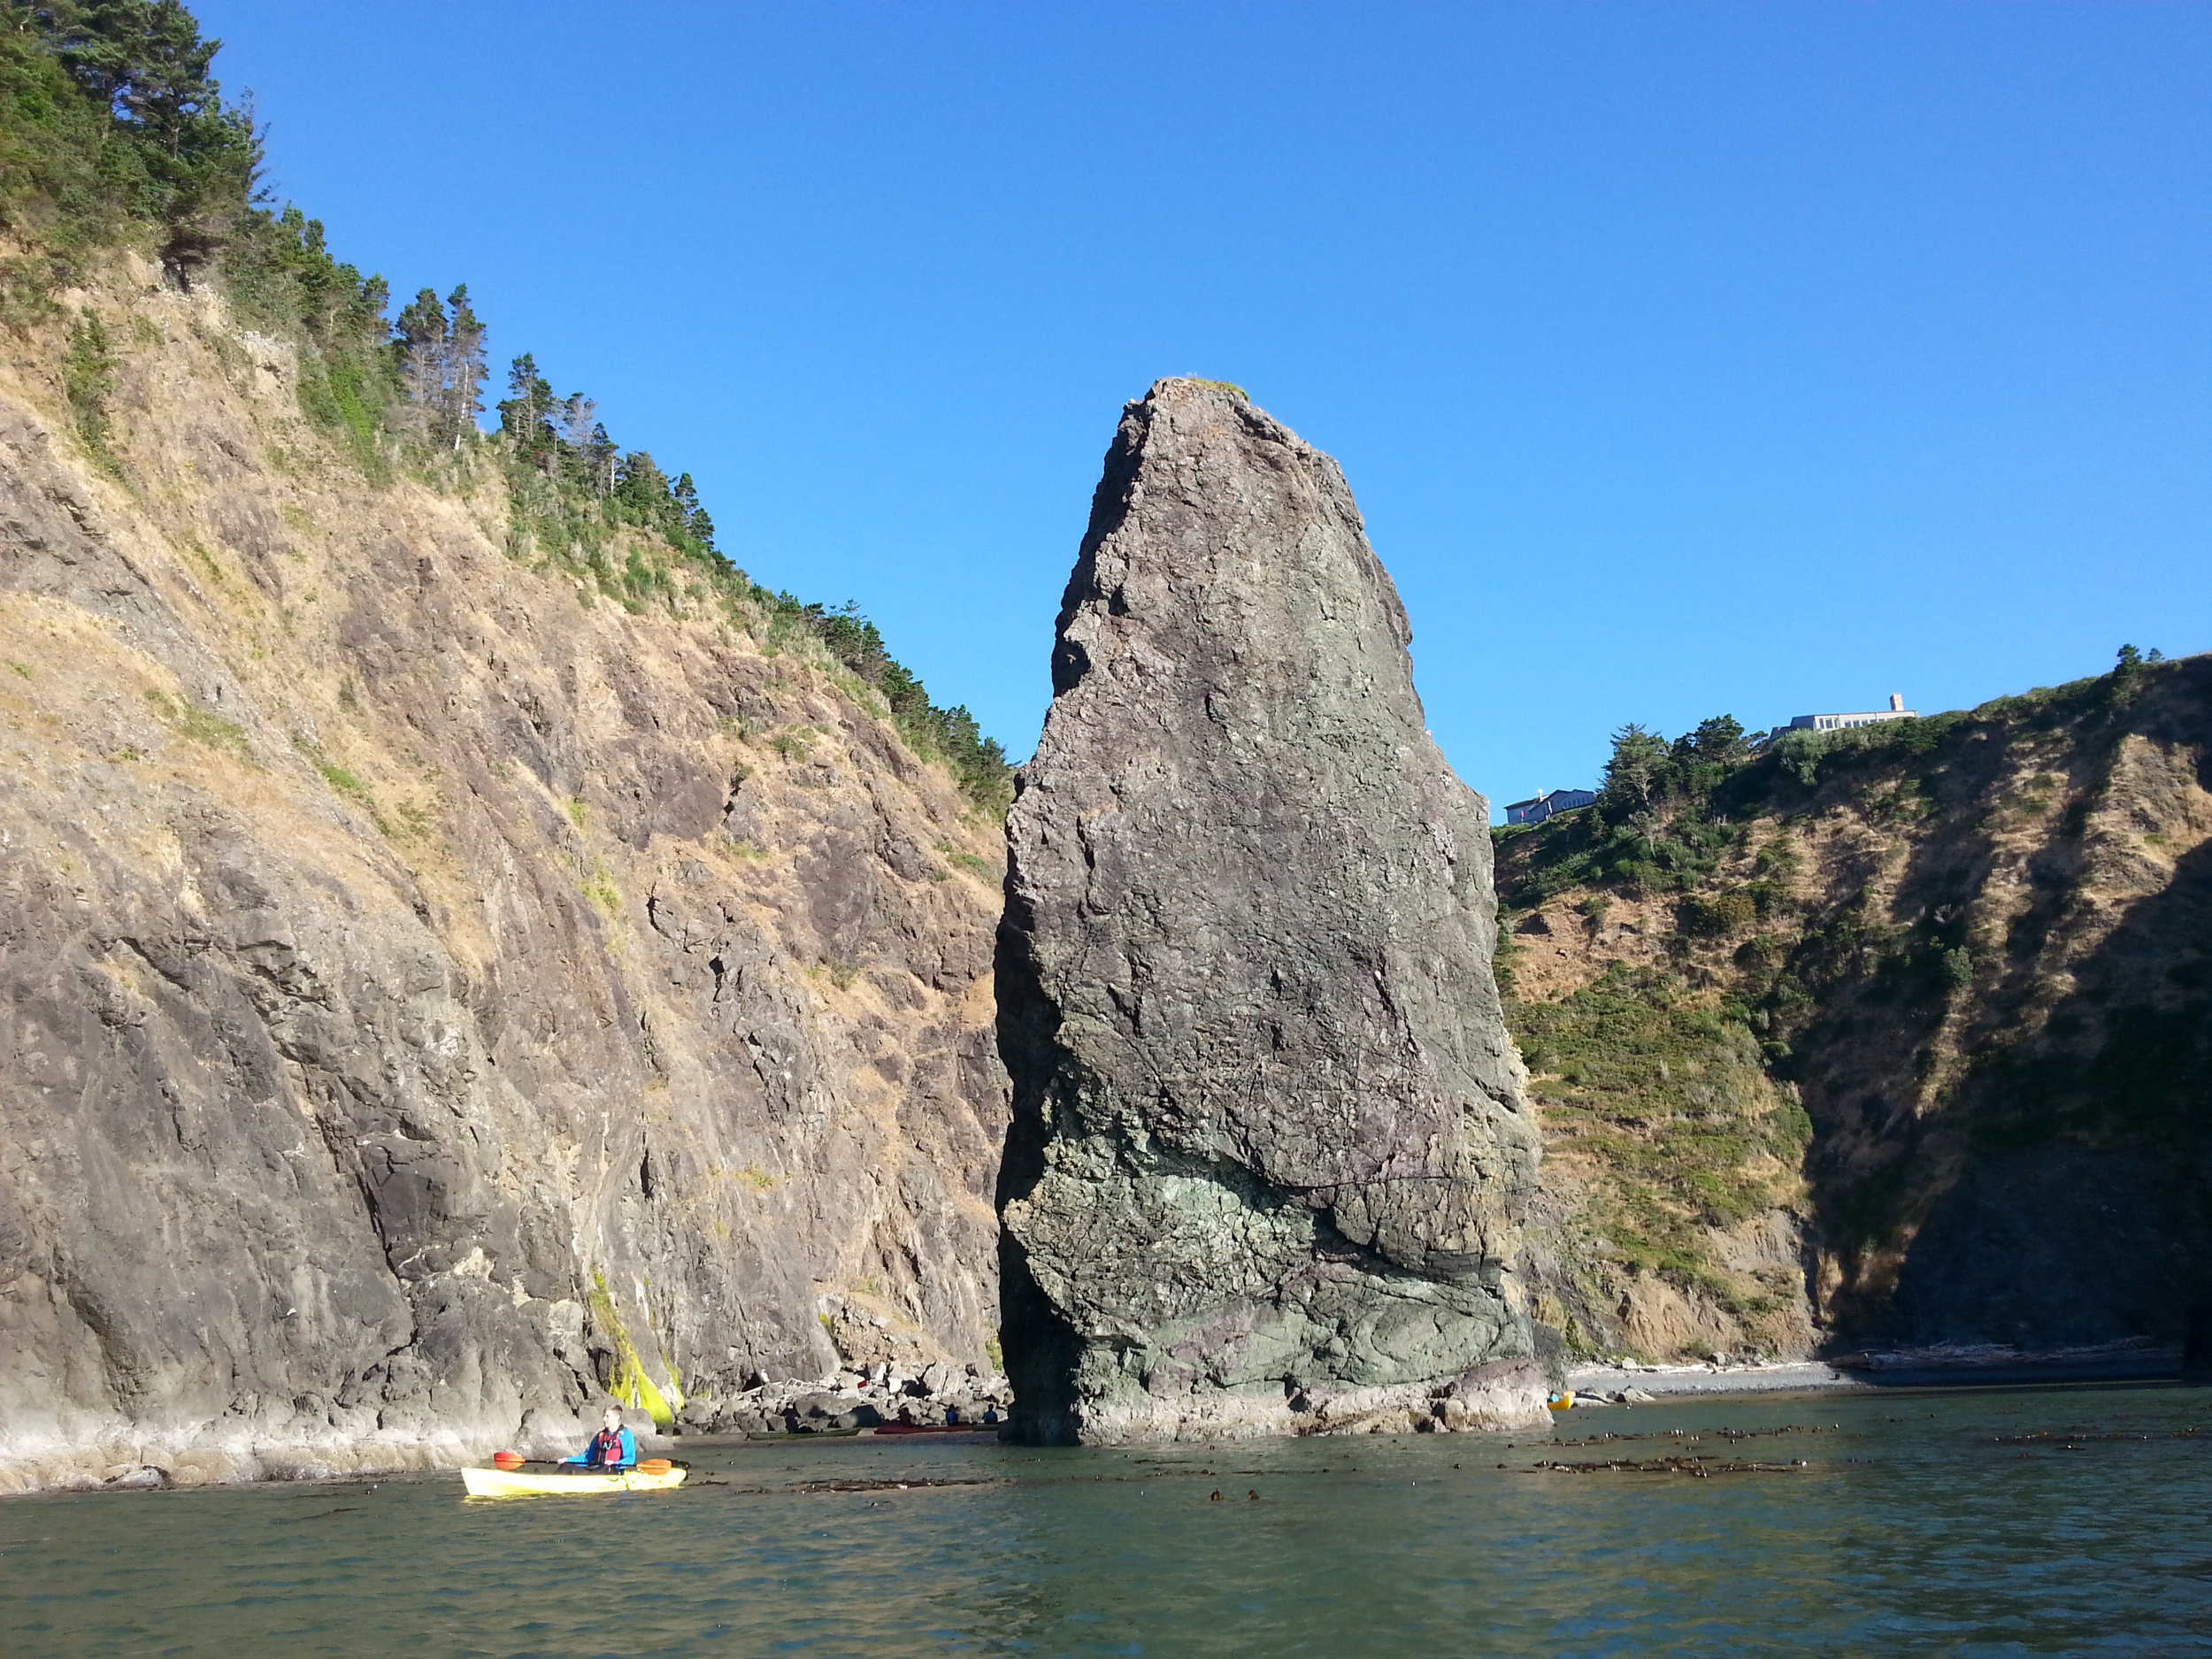 EXPLORING PORT ORFORD HEADS KAYAKING WITH SOUTH COAST TOURS - What to do in Southern Oregon